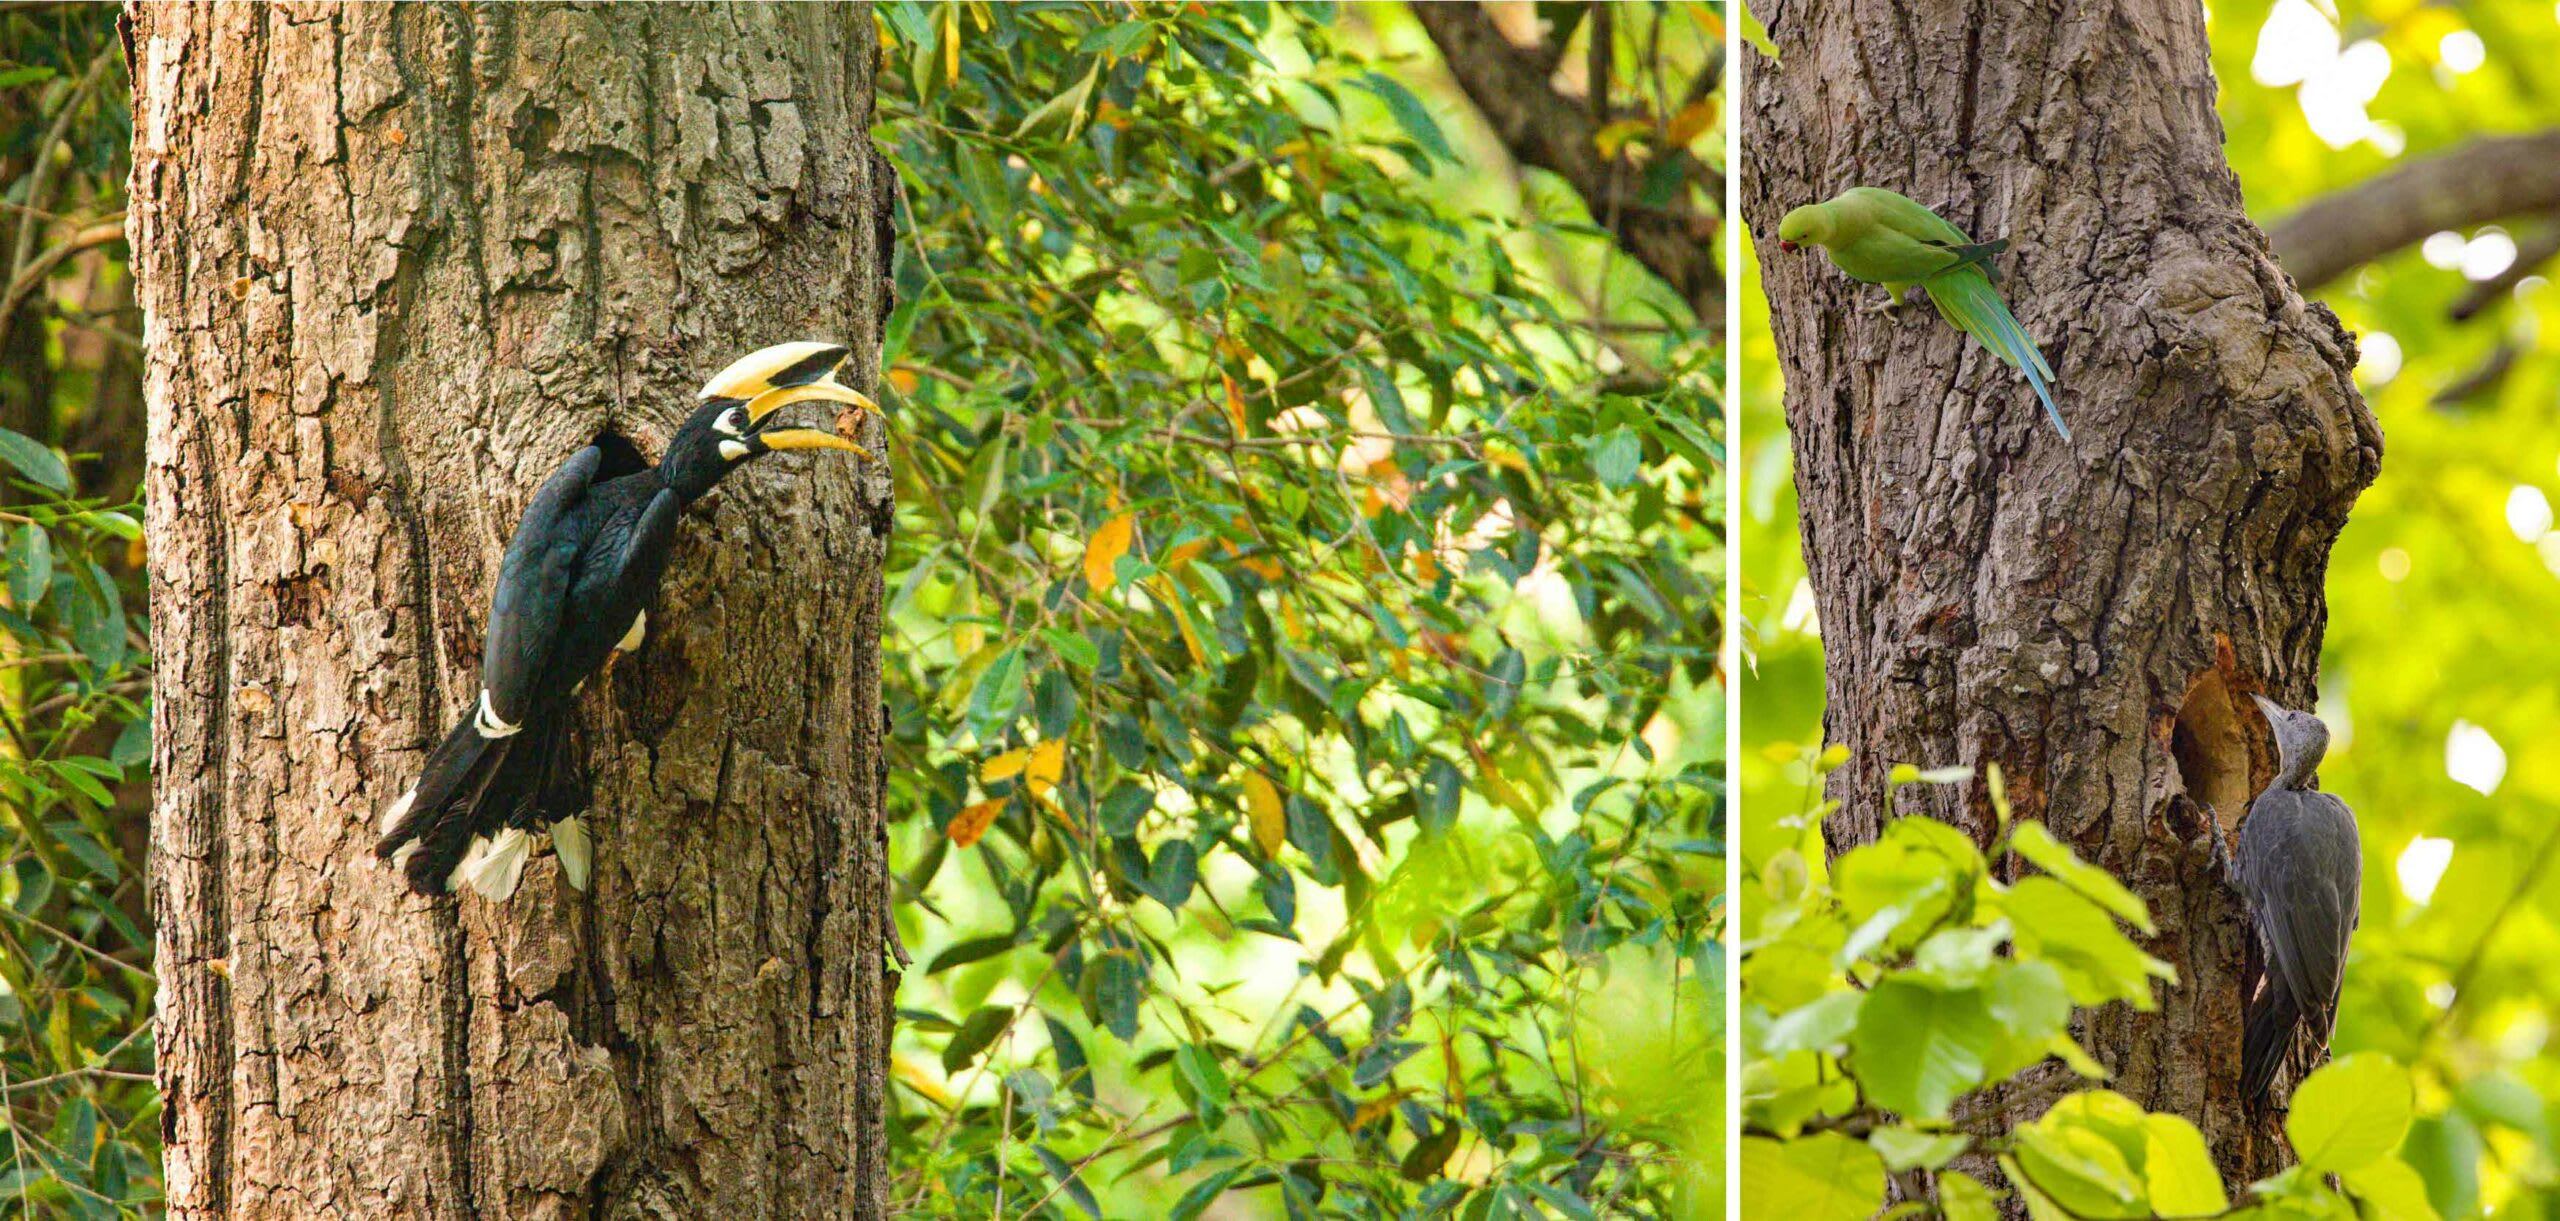 A woodpecker's cavity is used and reused multiple times by different species of birds. (Left) An oriental pied hornbill nests in an old cavity carved by the great slaty woodpecker. (Right) A parakeet eyes a great slaty woodpecker's occupied cavity. Photos: Martjan Lammertink (left), Raman Kumar (right)